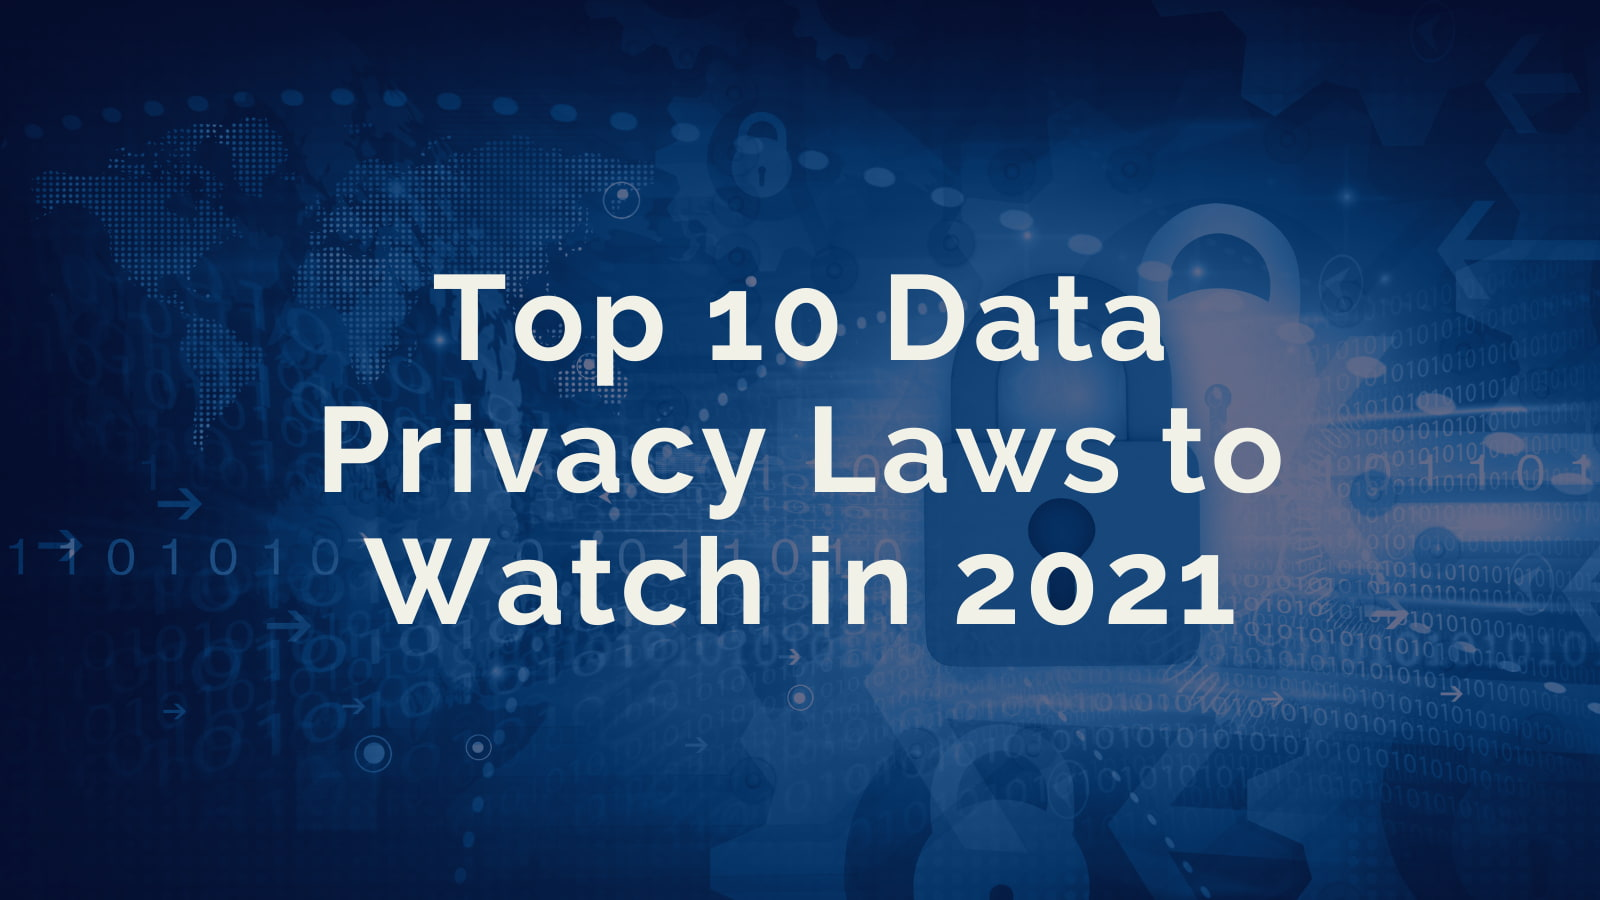 Top 10 Data Privacy Laws to Watch in 2021